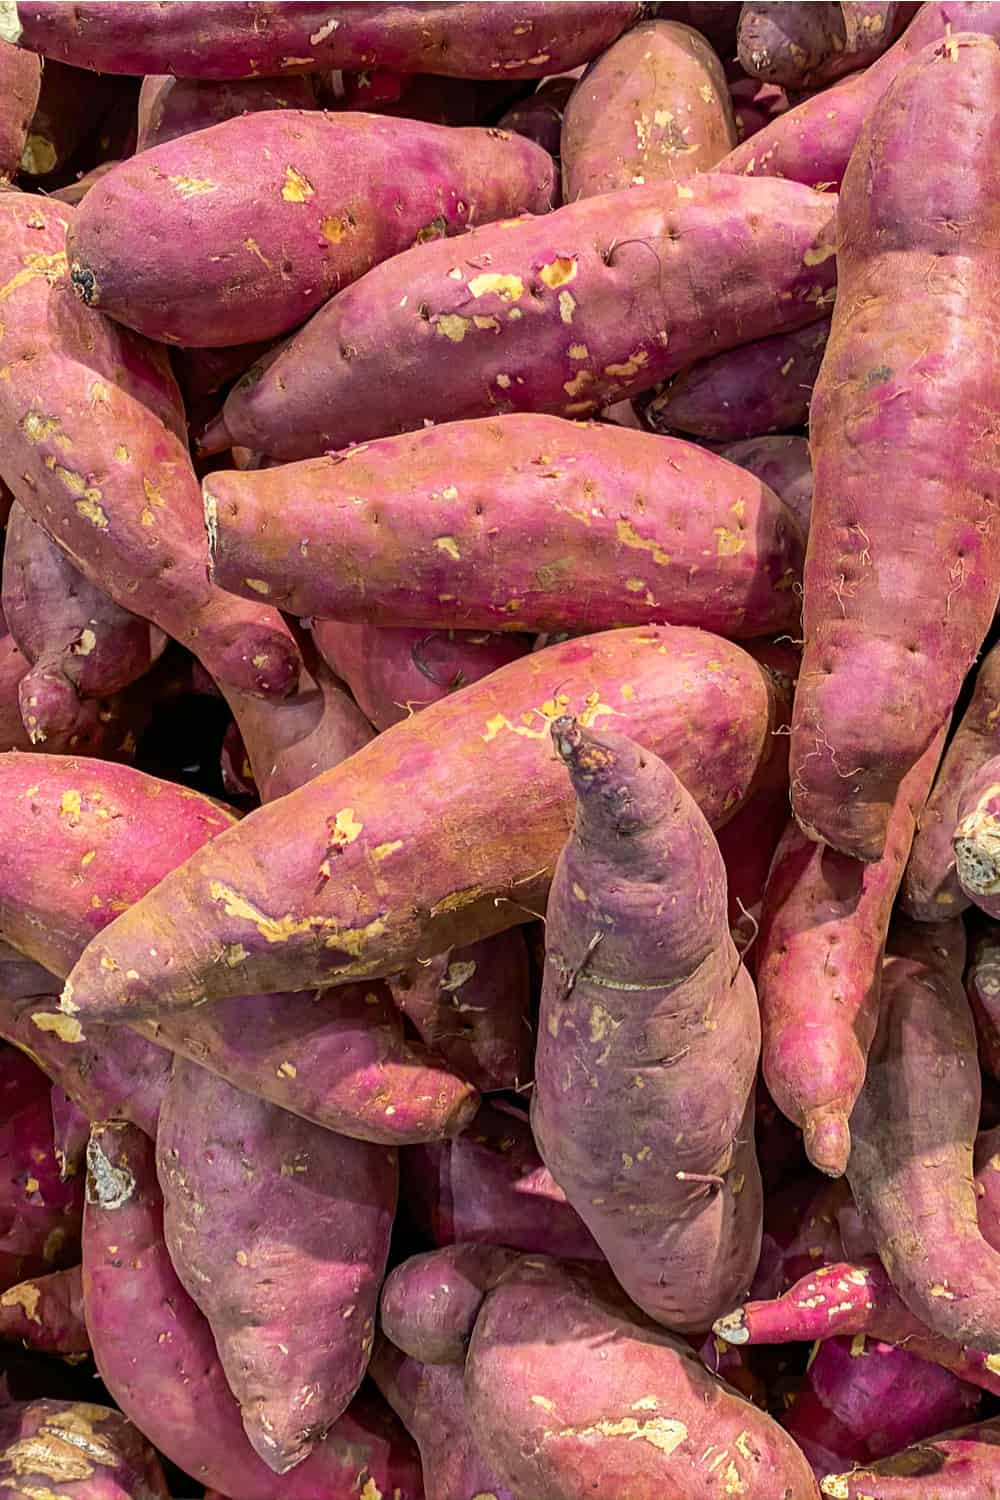 7 Tips to Tell if Sweet Potatoes Have Gone Bad